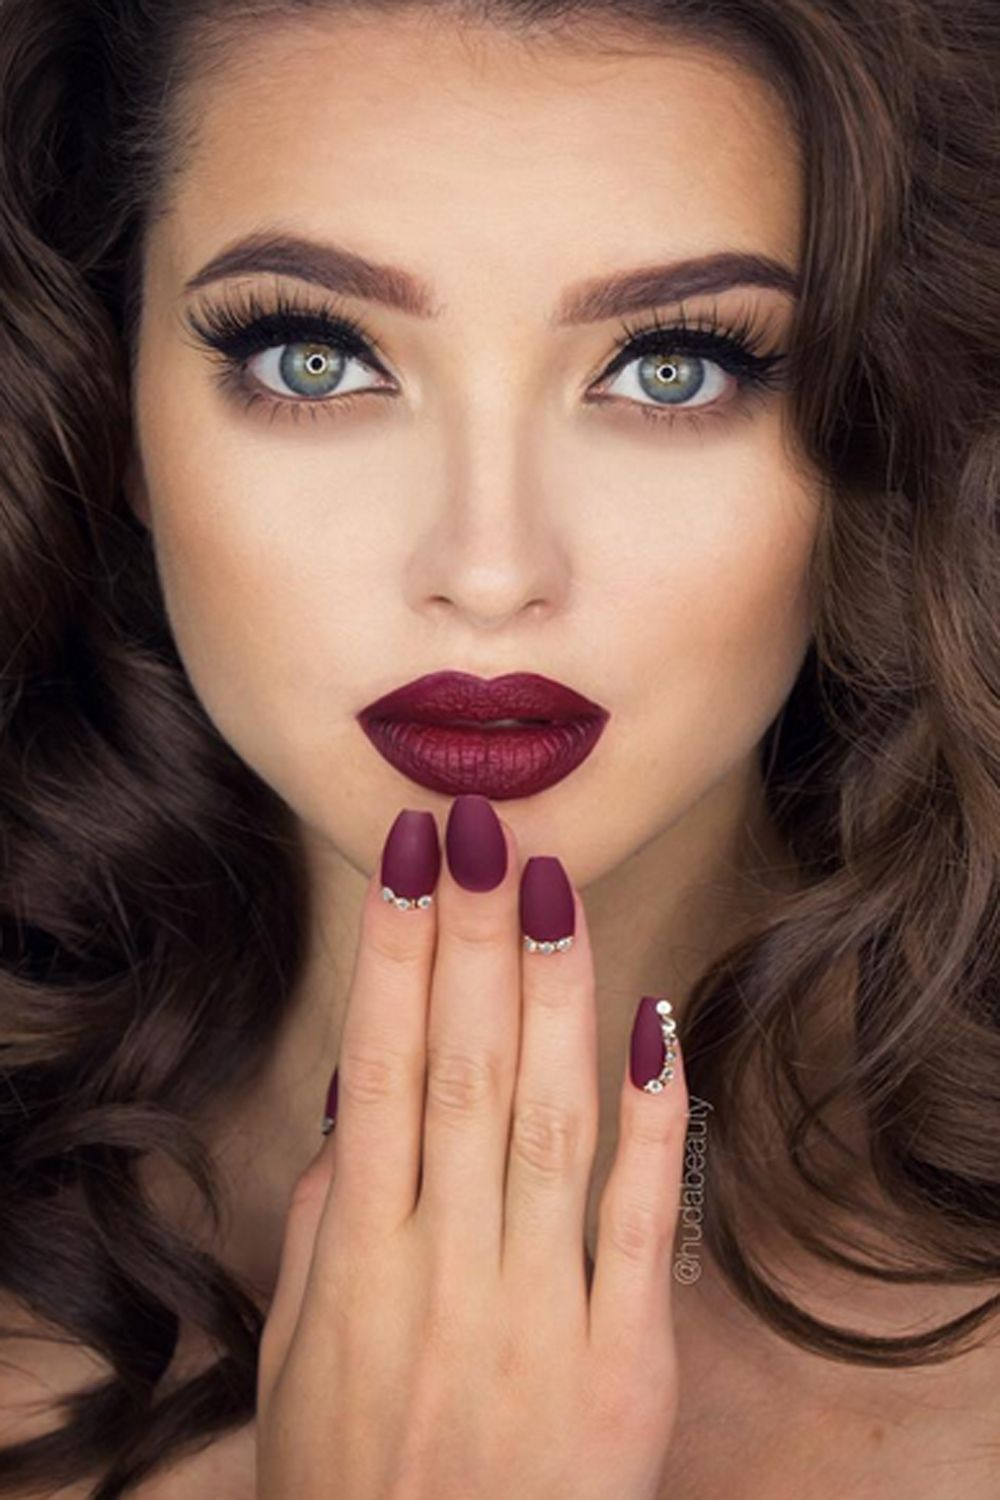 glam-how-to-do-your-makeup-for-wedding-guest-beauty-burgundy-maroon-lips.jpg